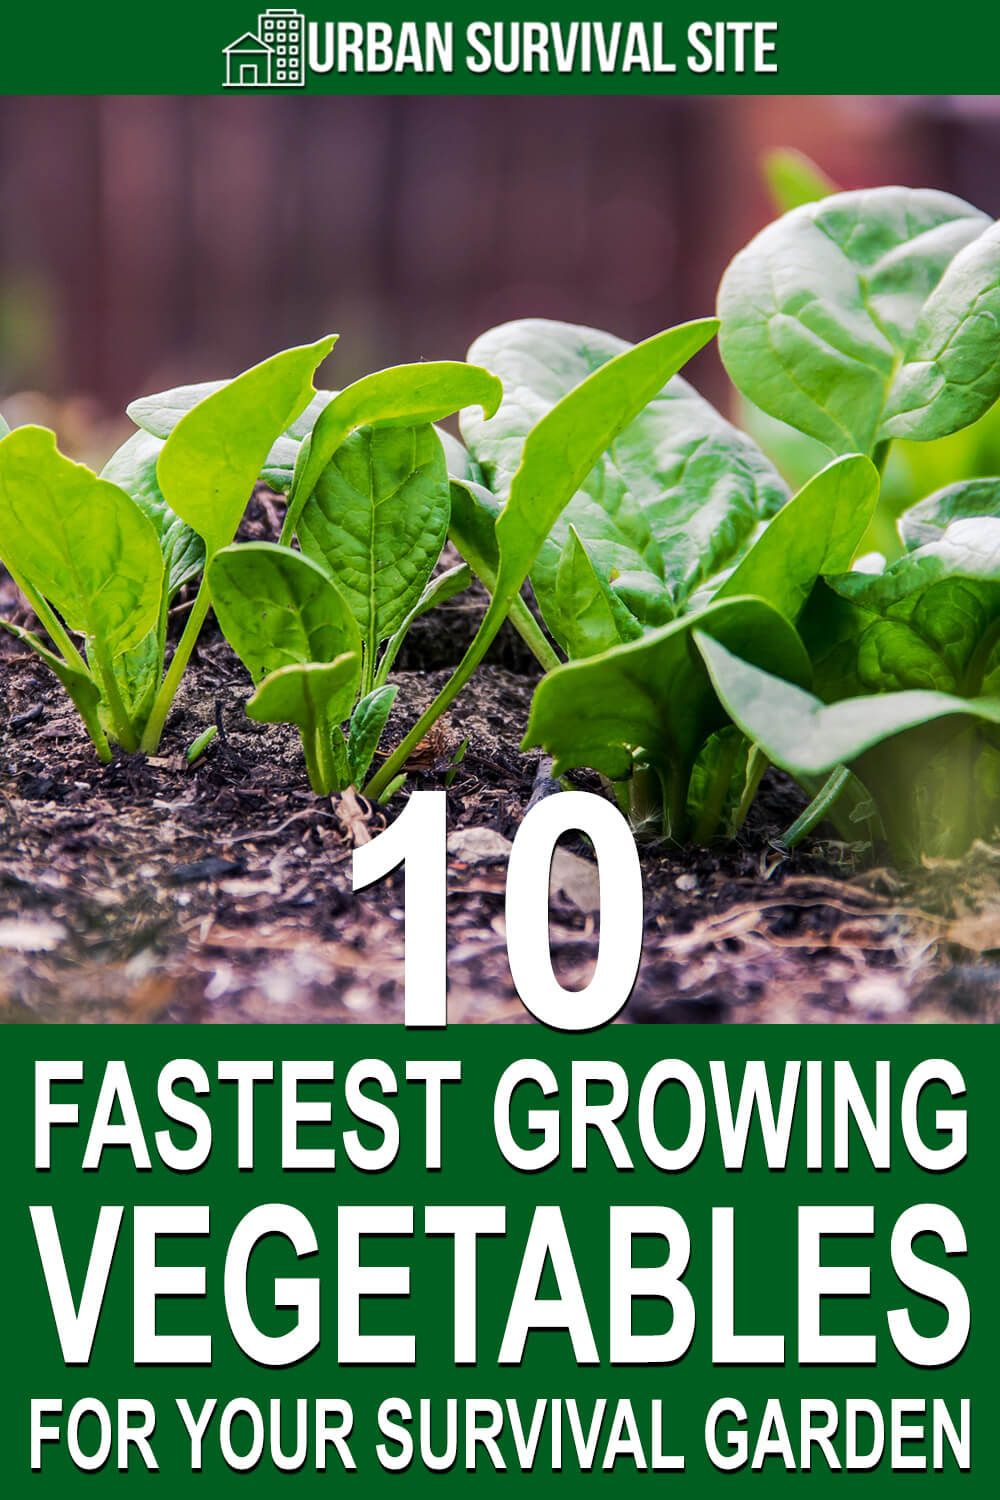 10 Fastest Growing Vegetables for Your Survival Garden is part of Growing vegetables, Survival gardening, Fast growing vegetables, Edible garden, Vegetable garden, Veggie garden - These vegetables can produce a harvest in as little as four weeks, and they give your family fresh greens to eat as you wait for the rest of your garden